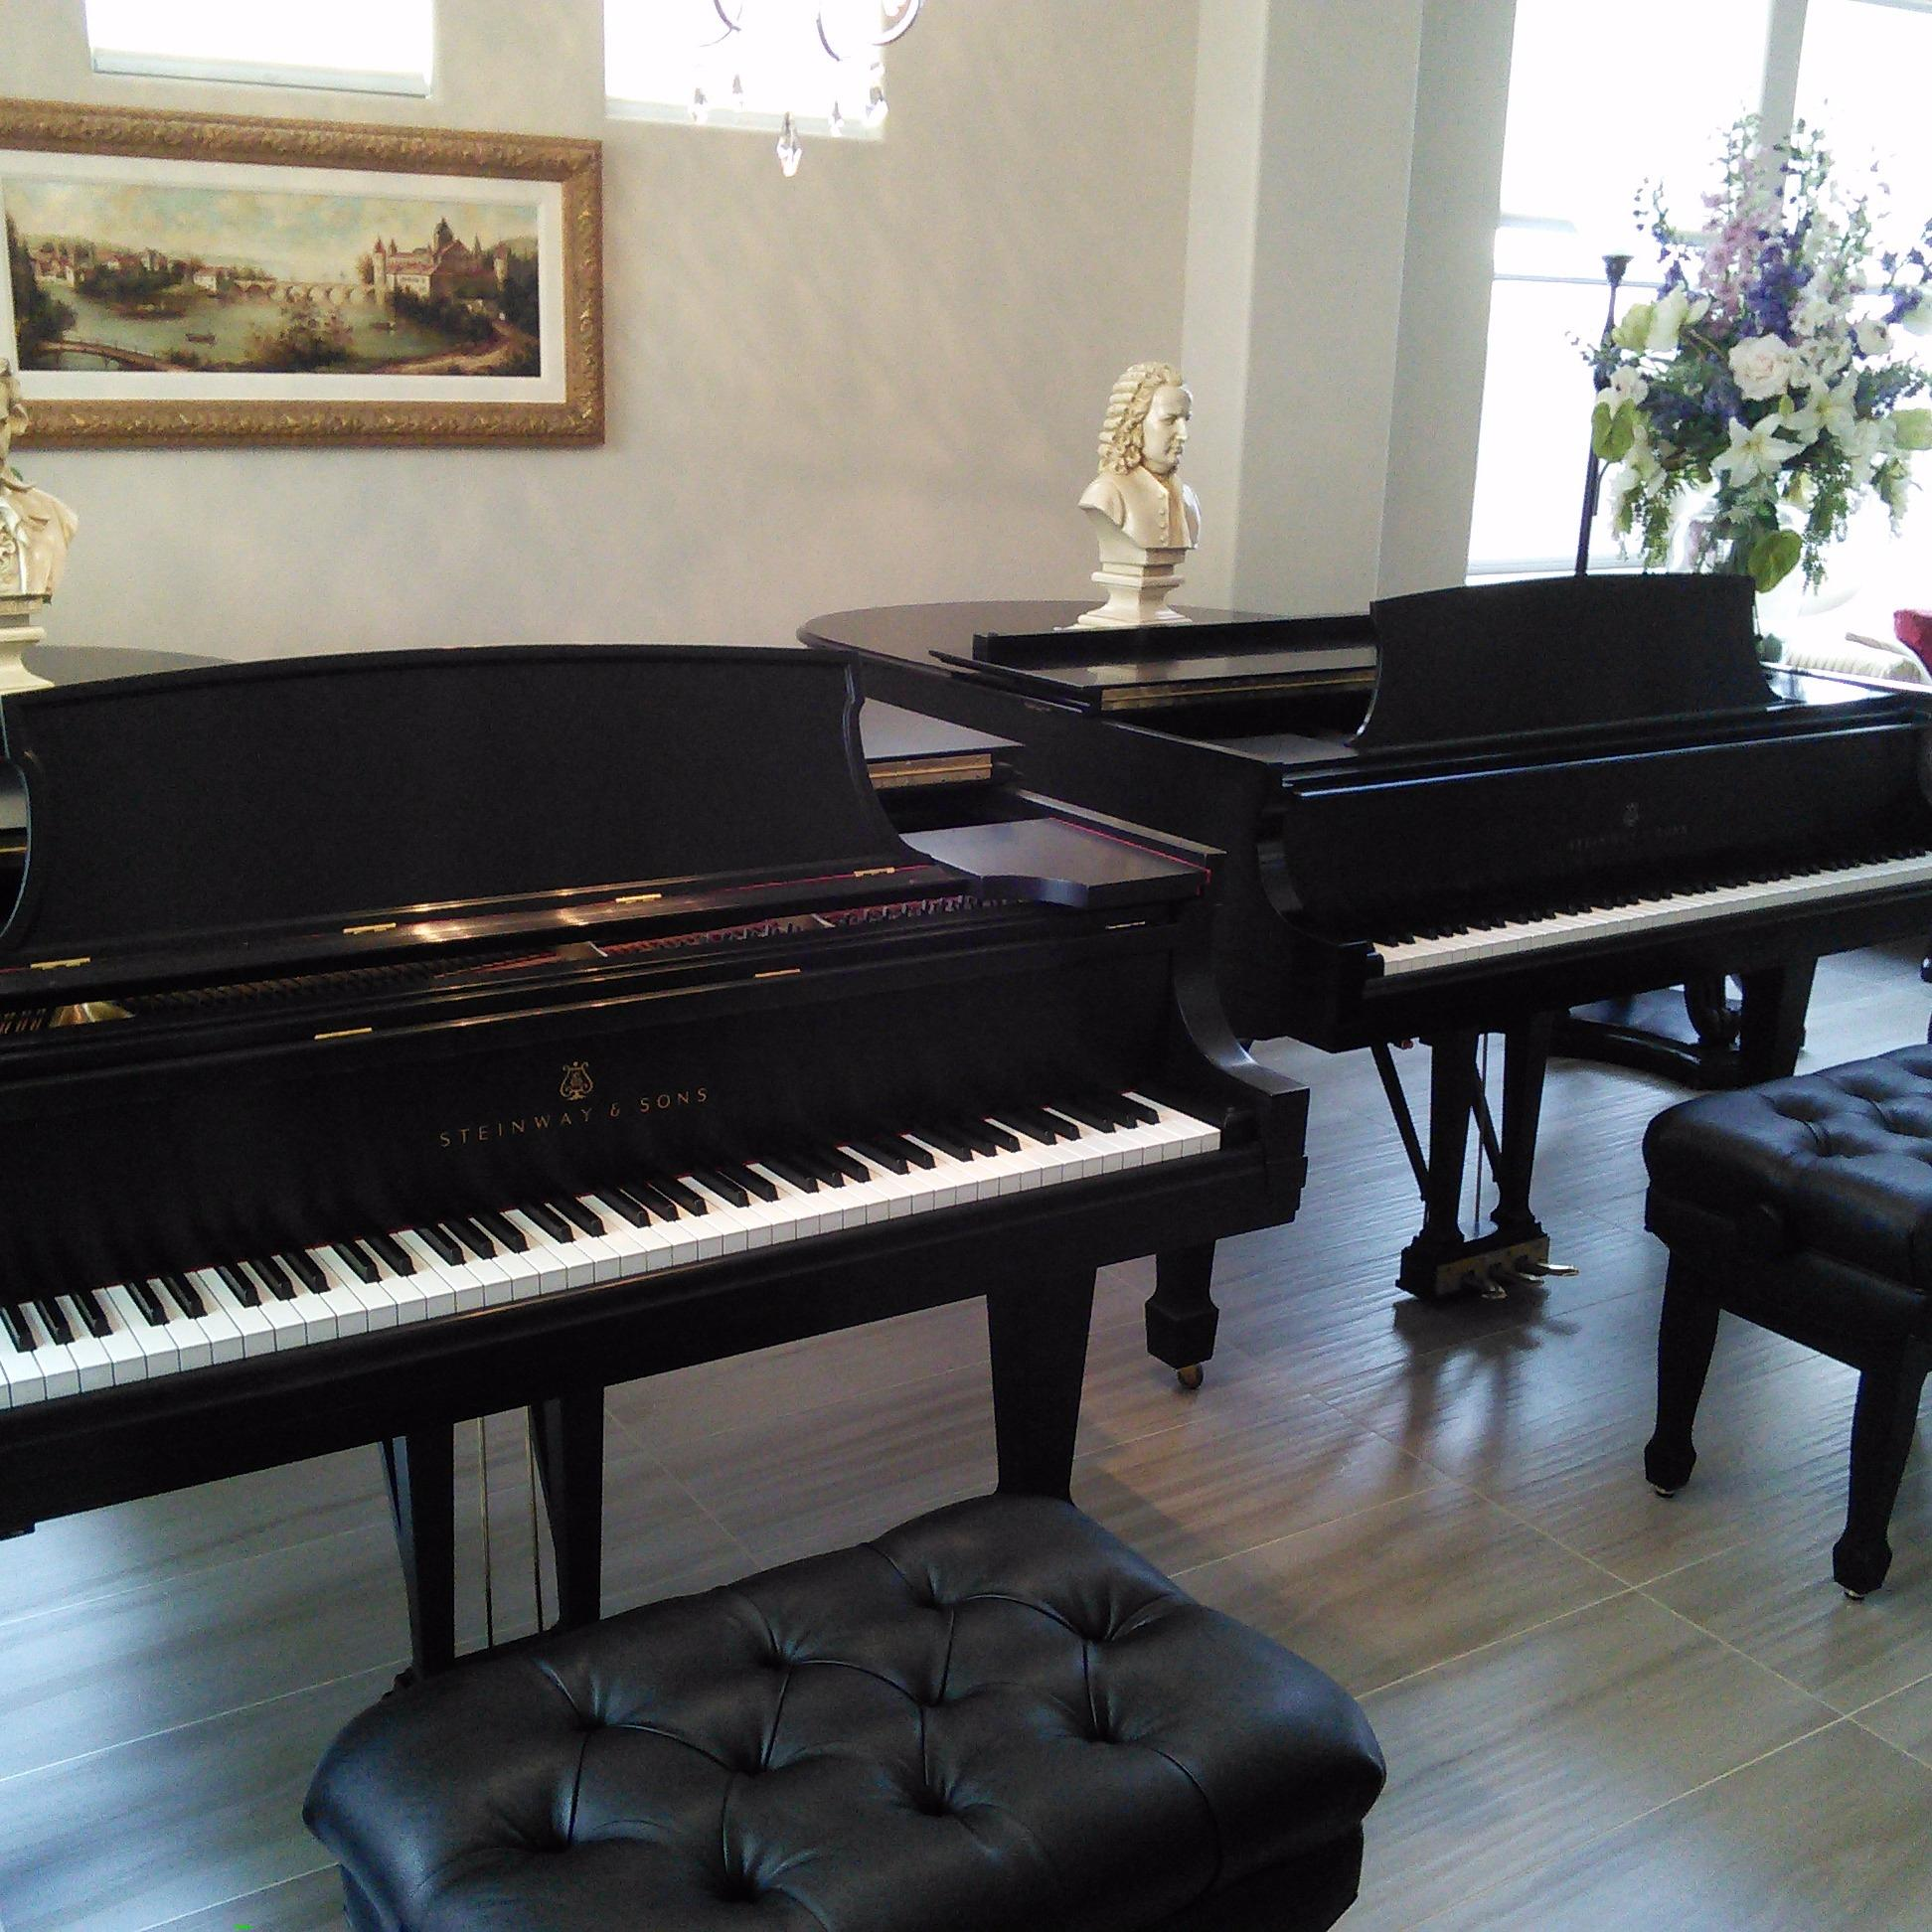 summerlin piano studio coupons near me in las vegas 8coupons. Black Bedroom Furniture Sets. Home Design Ideas